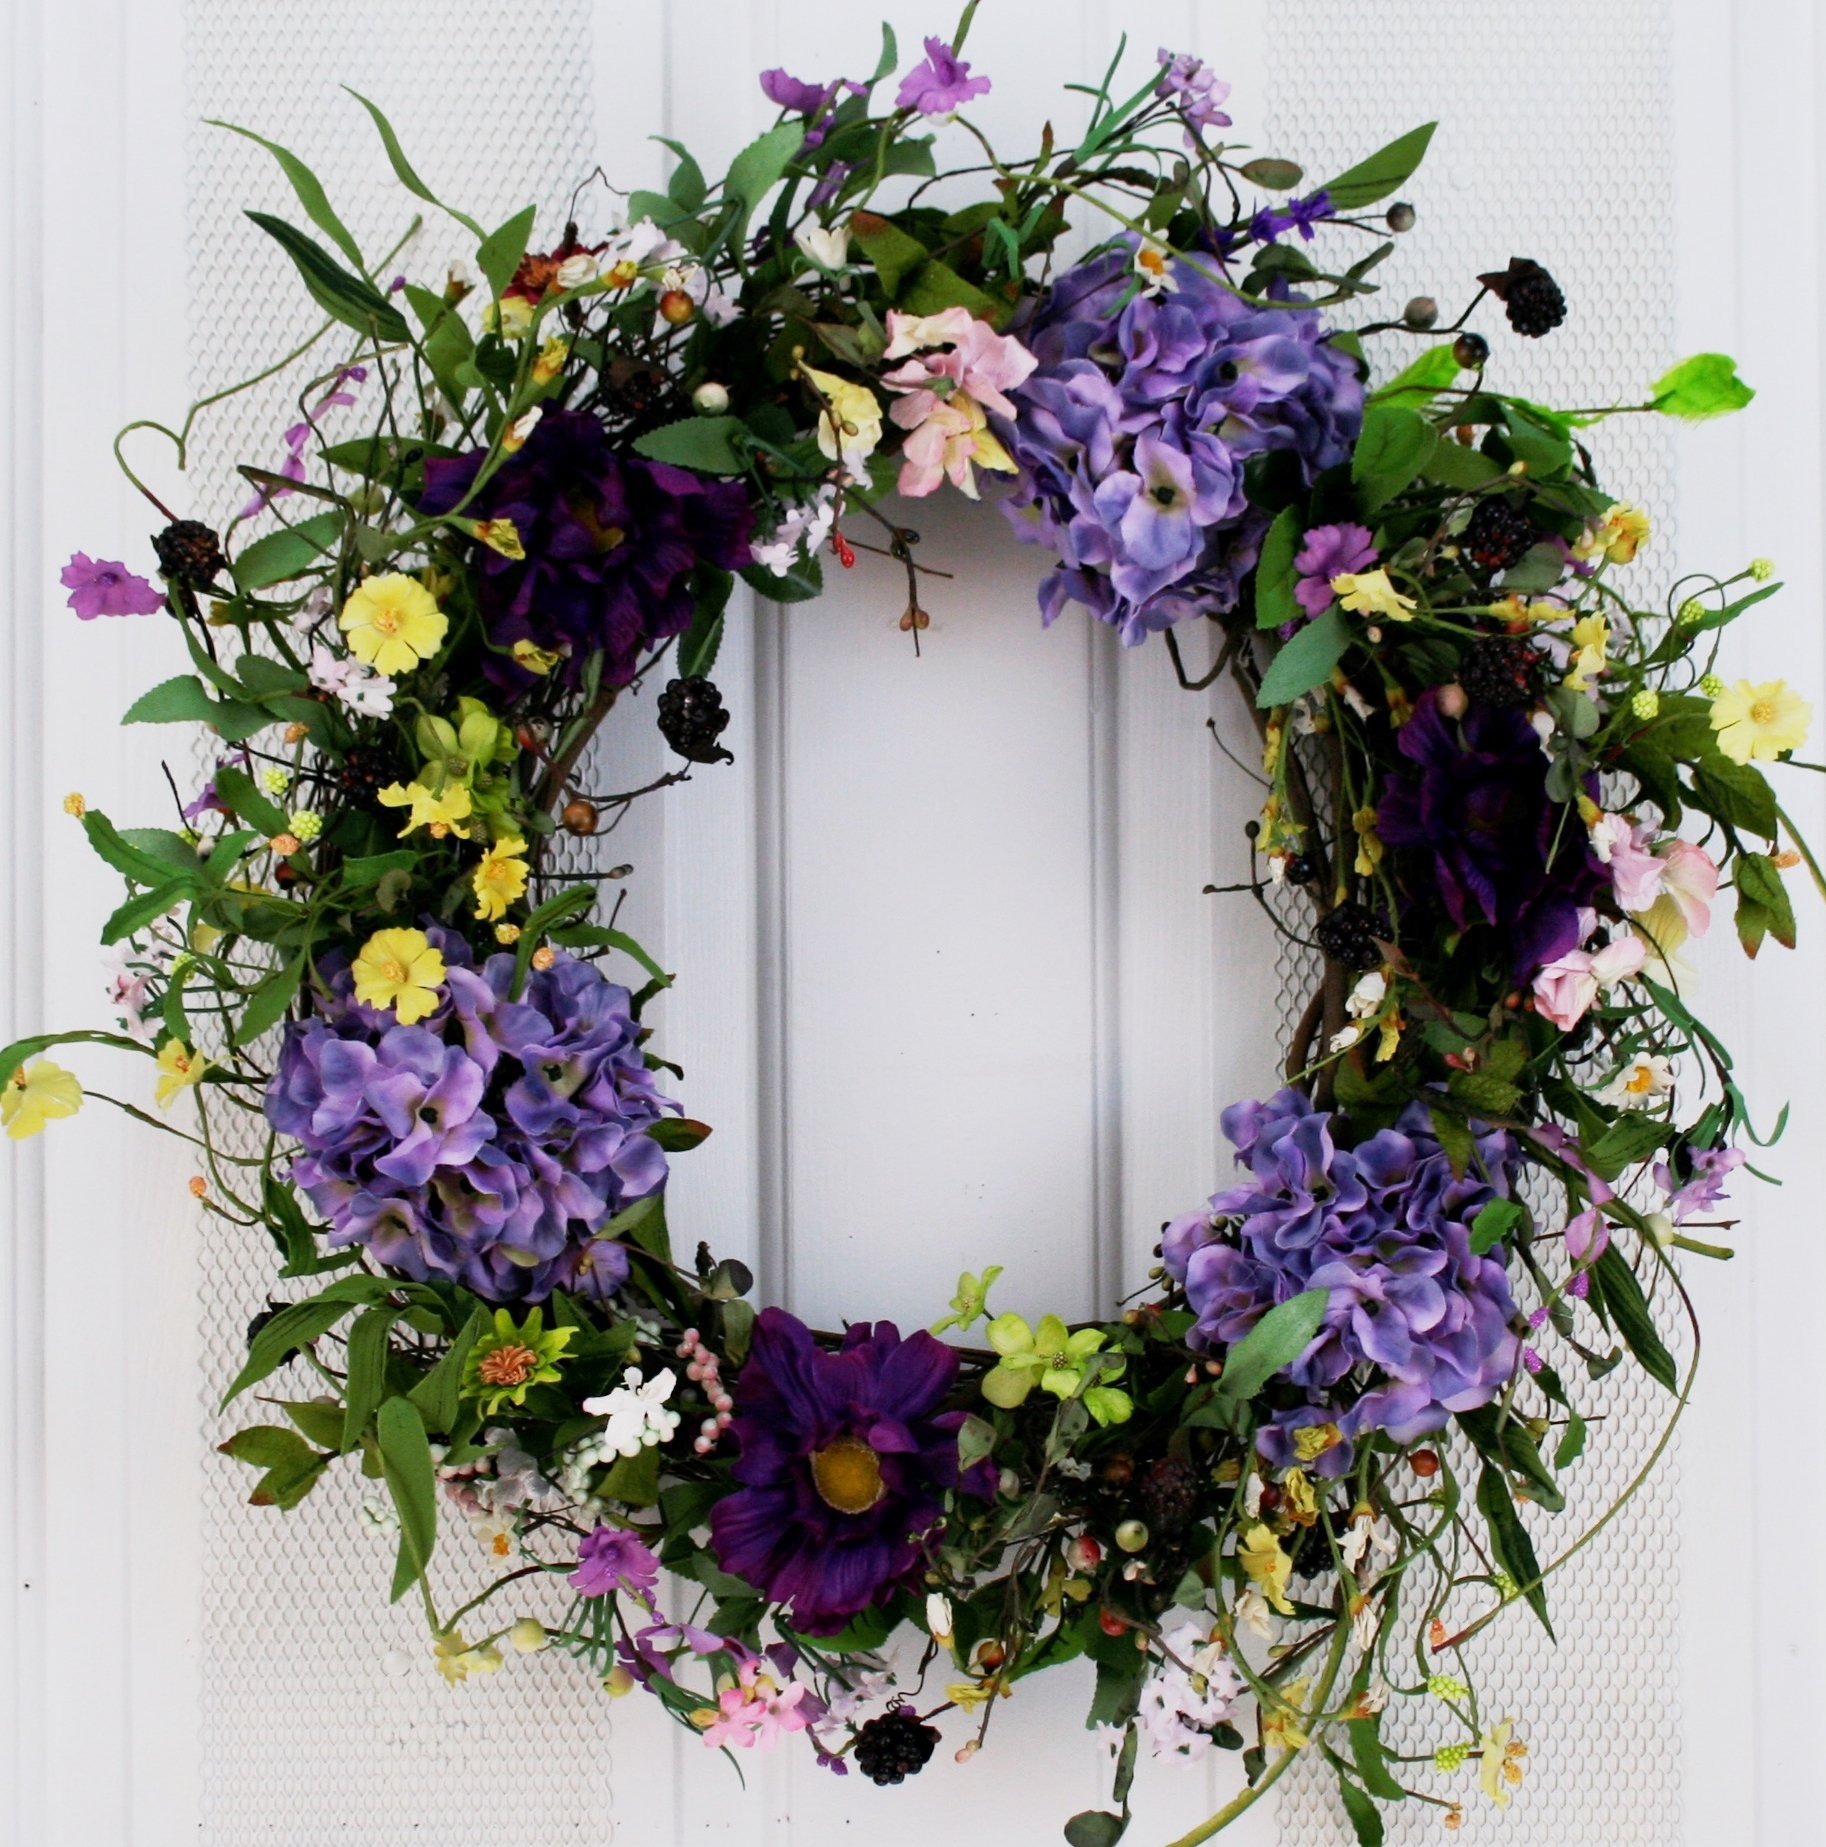 Spring Medley Silk Flower Wreath 22 inch for Spring and Summer Front Door Decoration